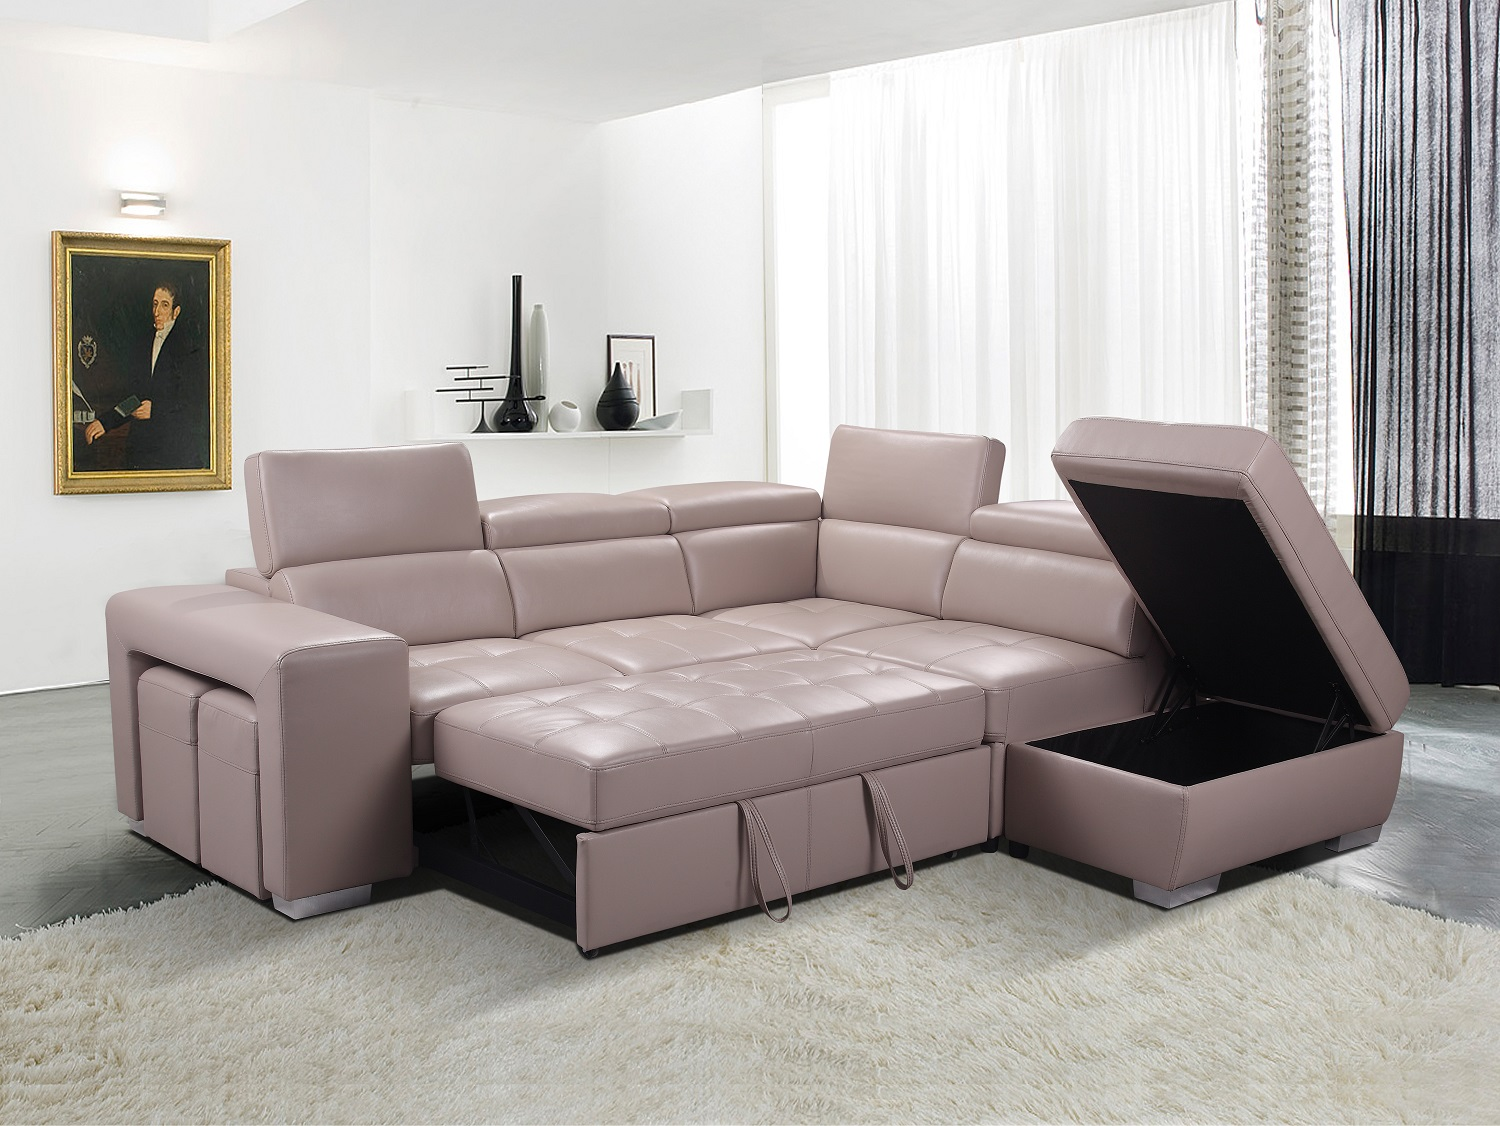 SECTIONAL-GL 6239 POSTIANO